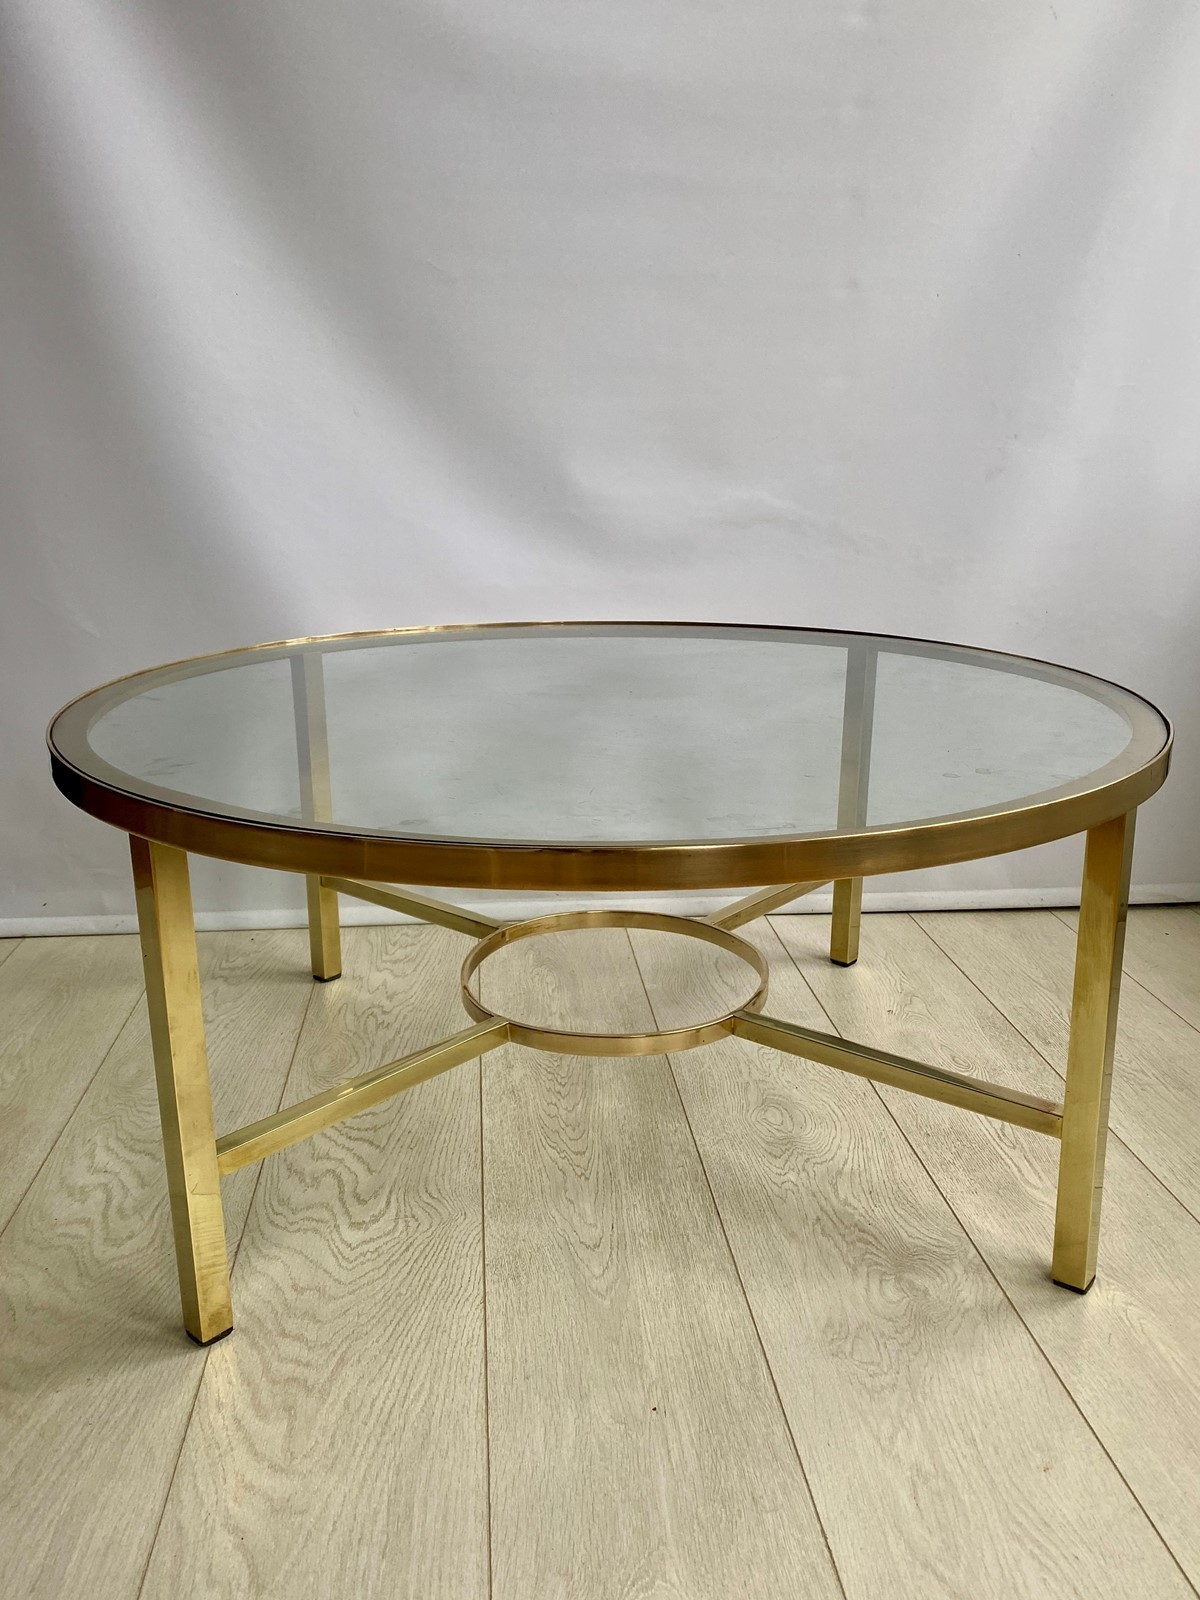 Vintage Brass Round Circular Coffee Table Vinterior